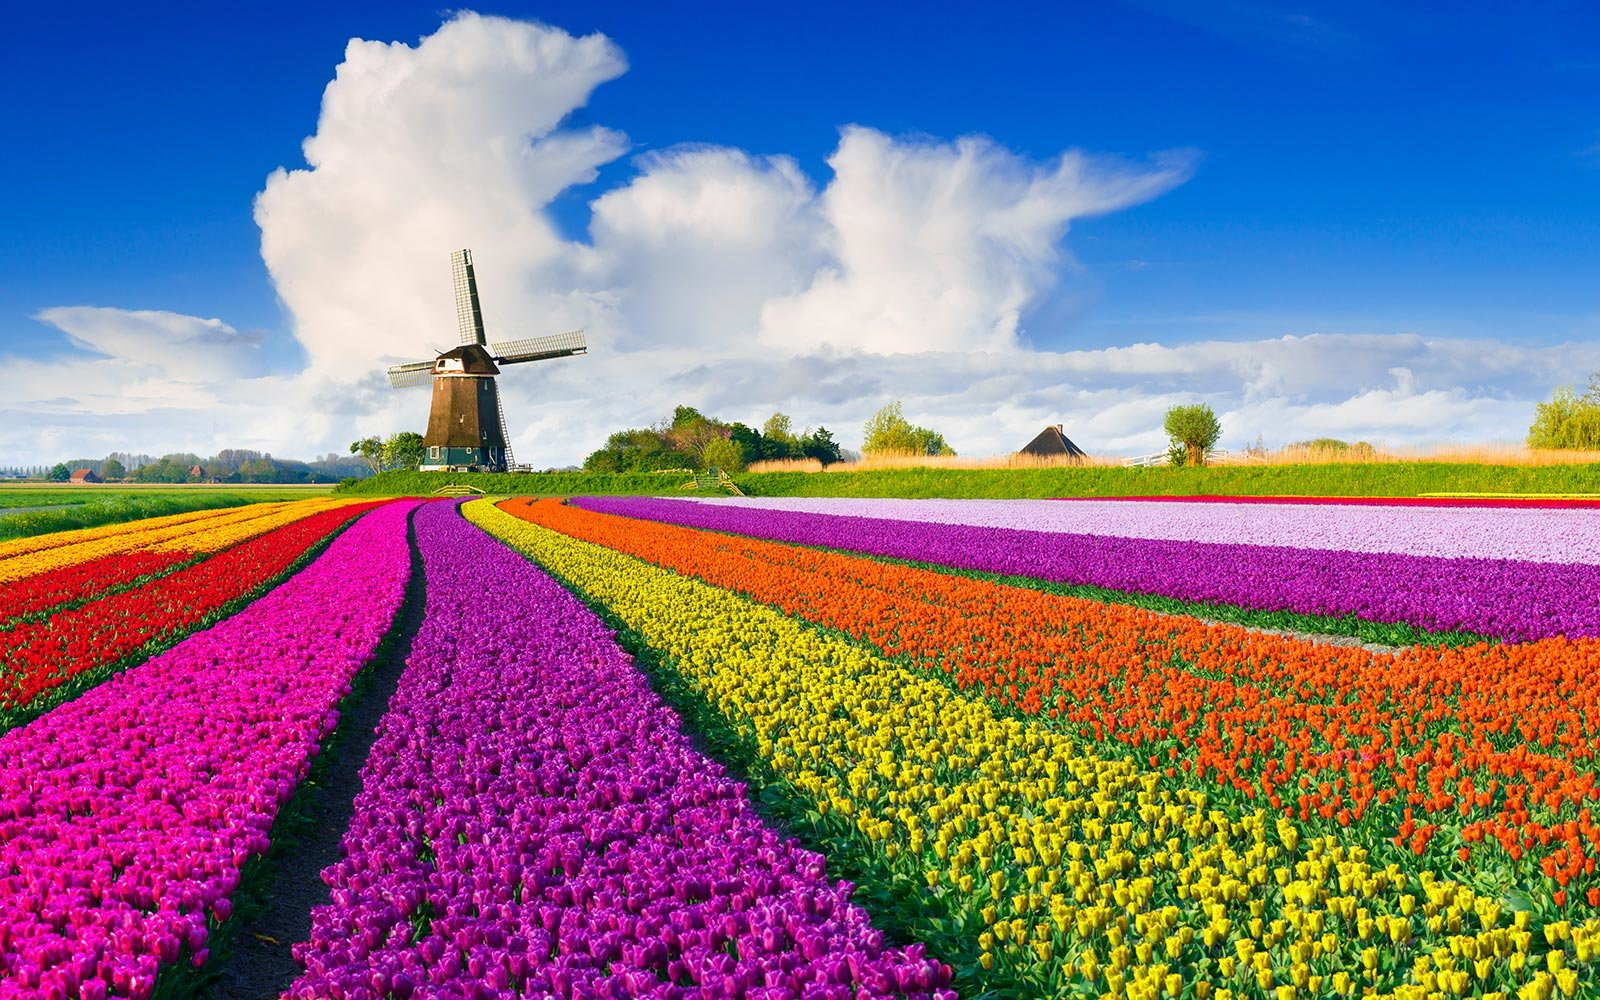 DEAL: $387 to Amsterdam to See Tulips